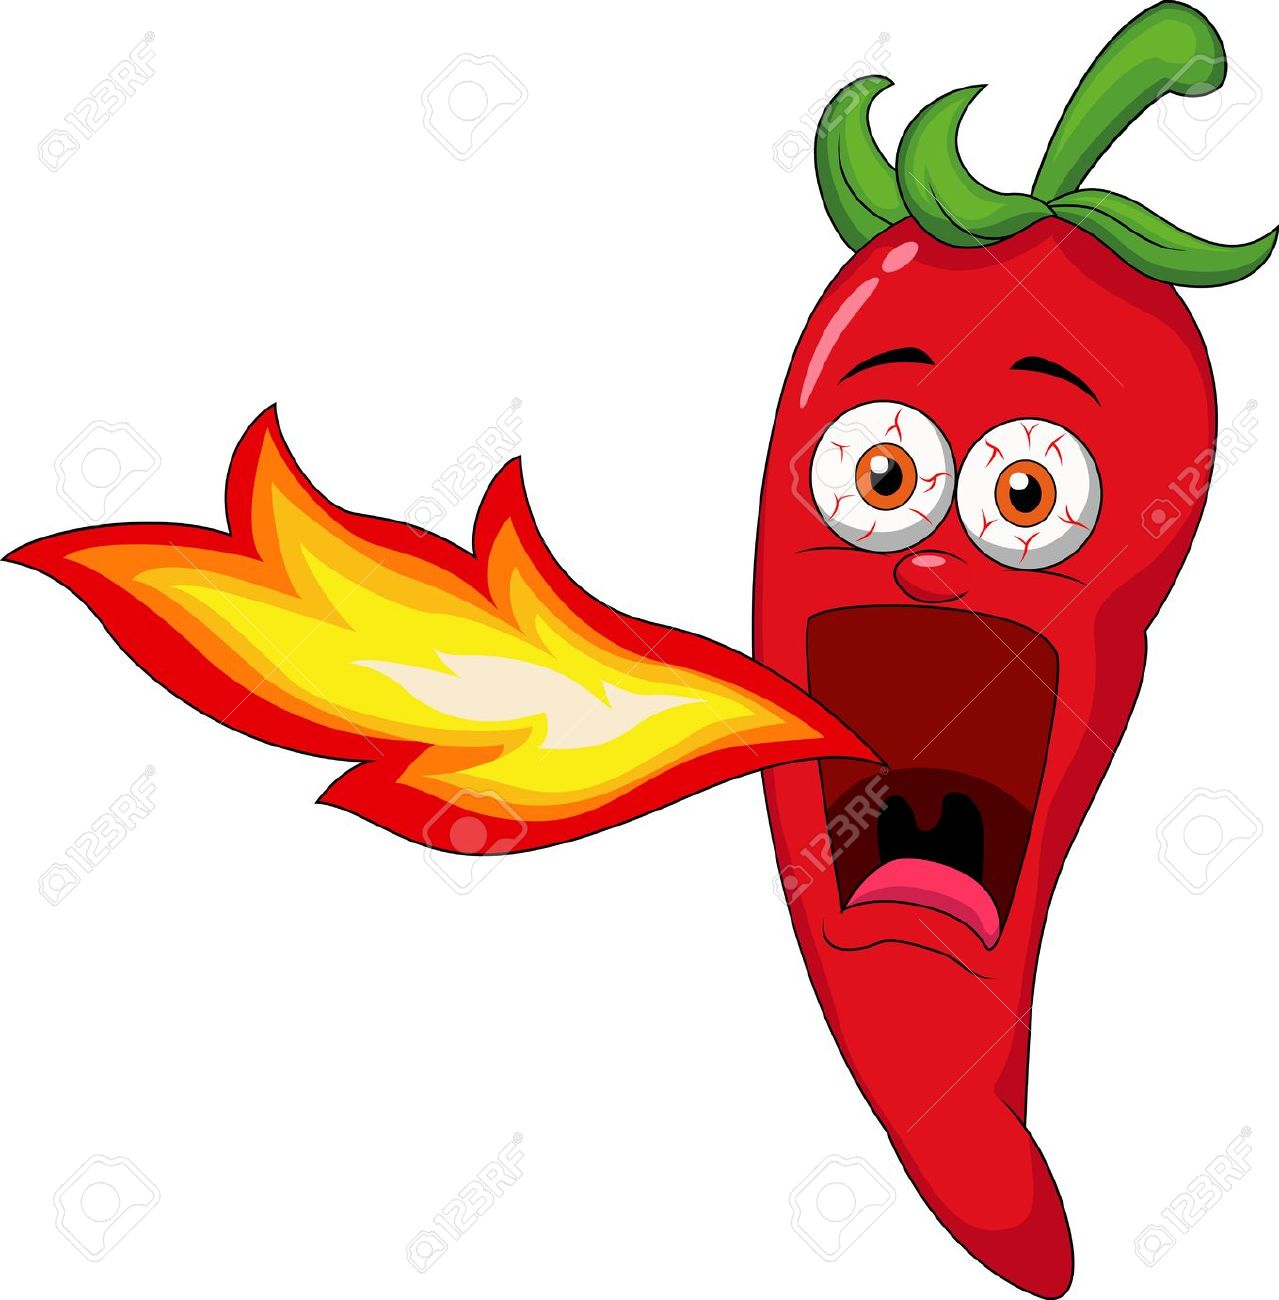 Hot pepper clipart.